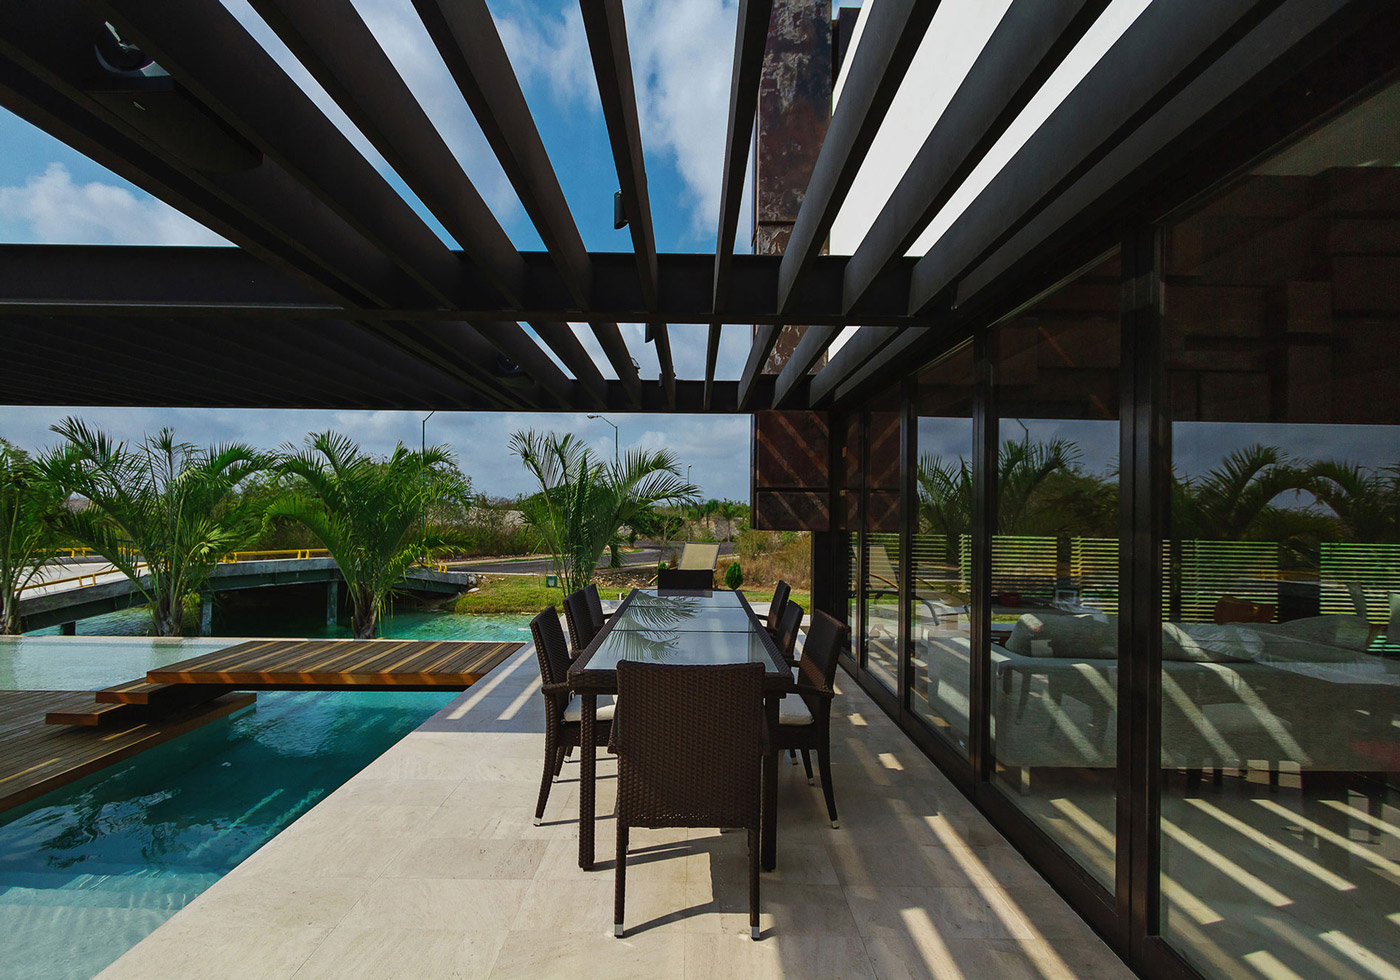 Outdoor Dining Table, Bridge Over Pool, Contemporary Residence in Merida, Yucatan